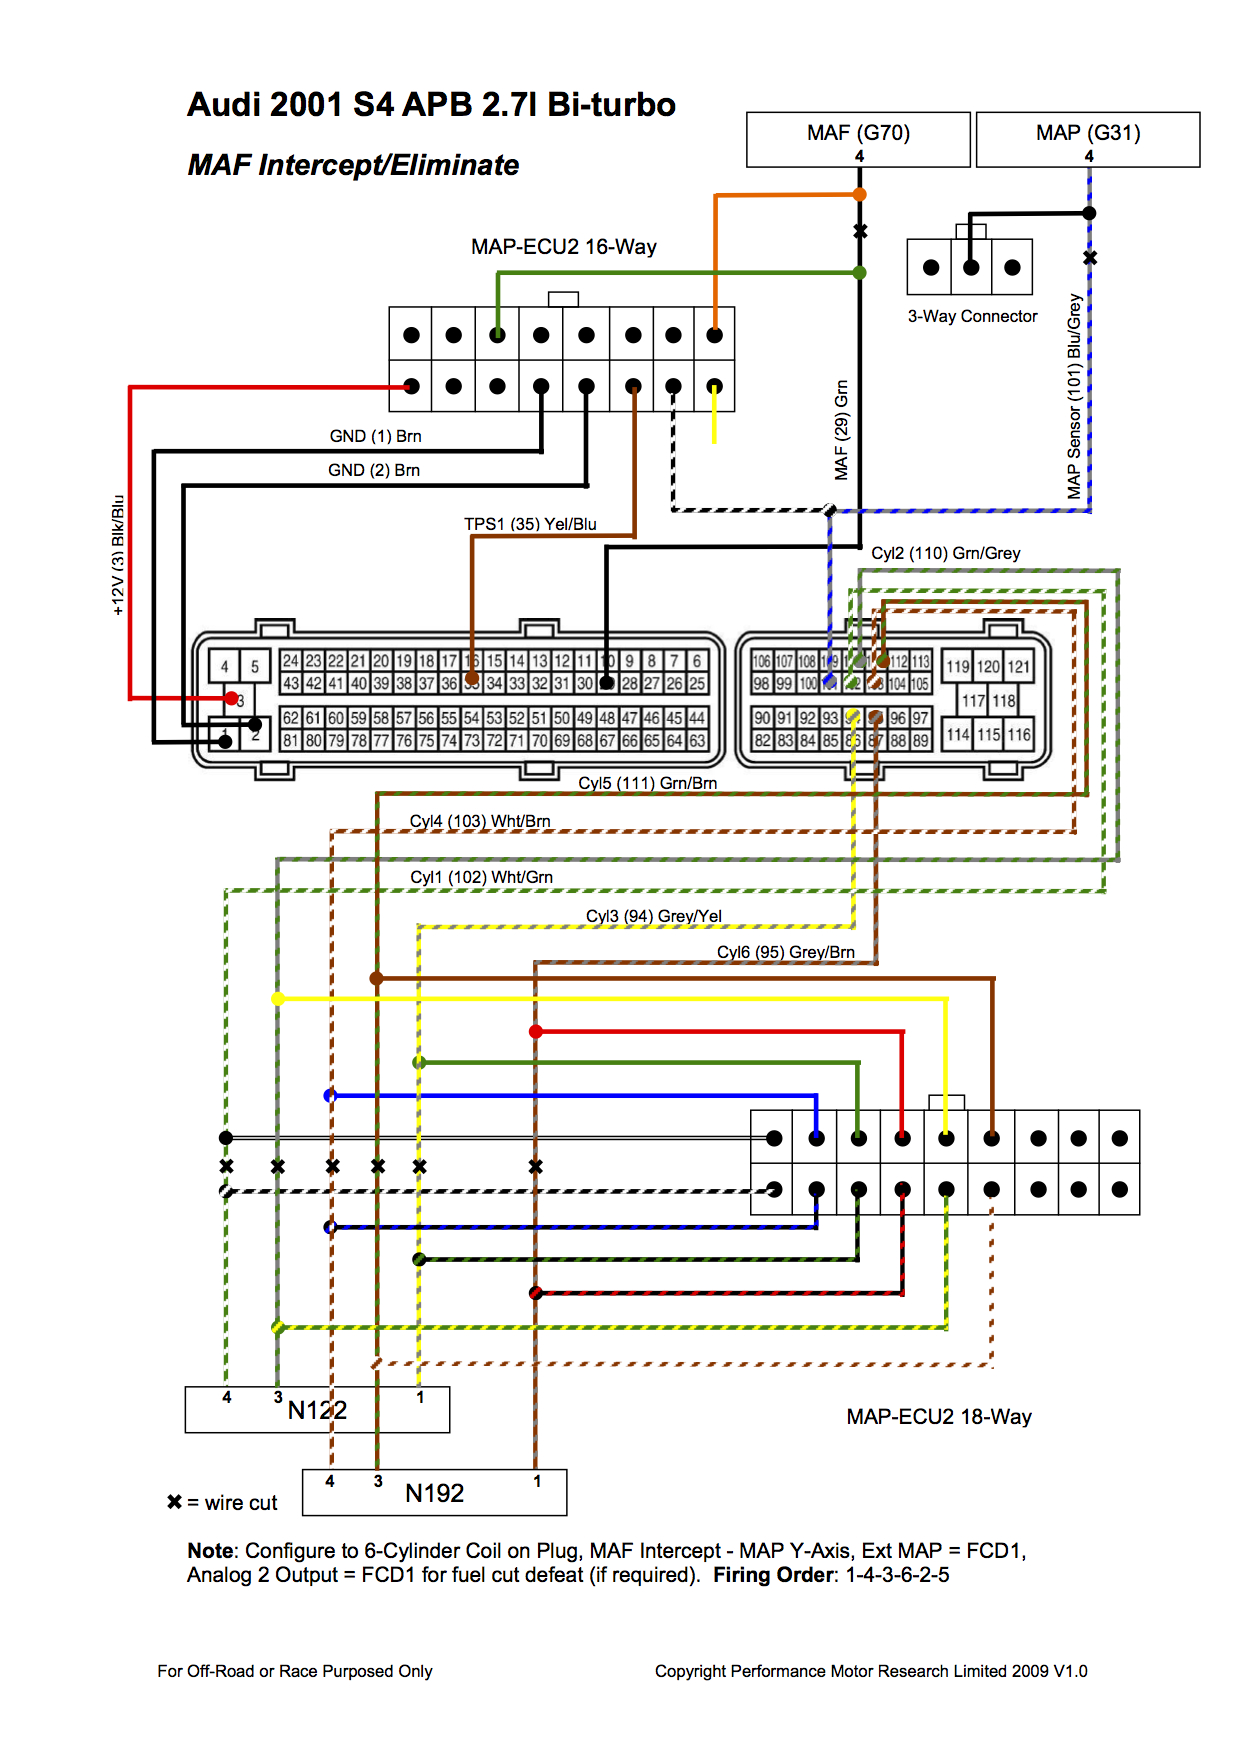 Audi S4 20011 ecu wiring diagram paccar ecu wiring diagram \u2022 wiring diagrams j 300ZX Lamborghini Body Kit at aneh.co